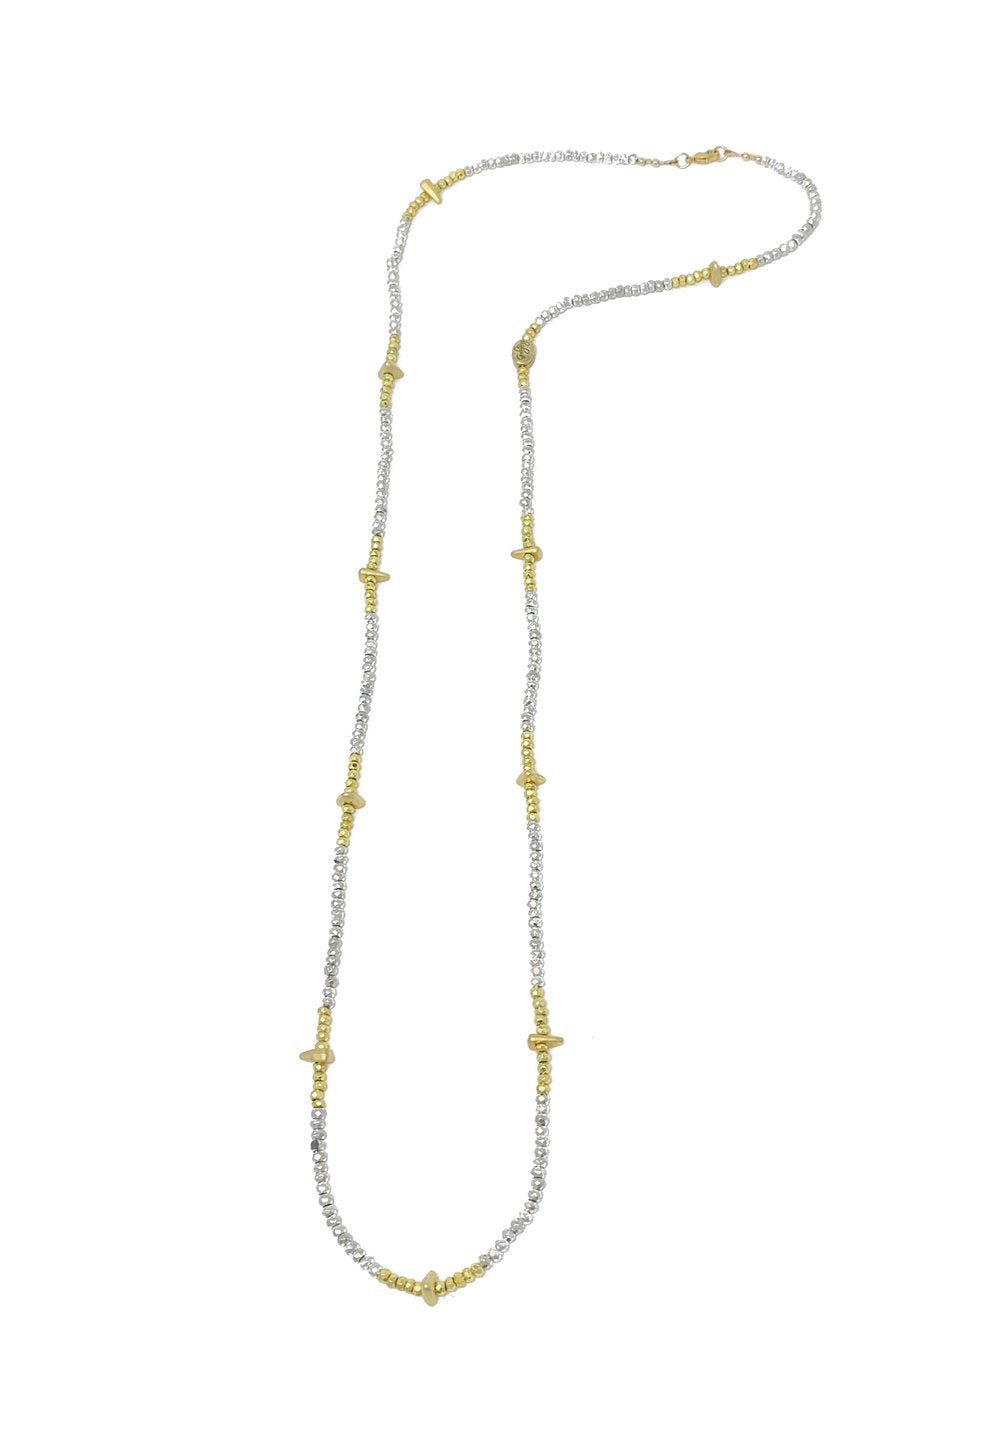 Gaby Ray Martine Necklace